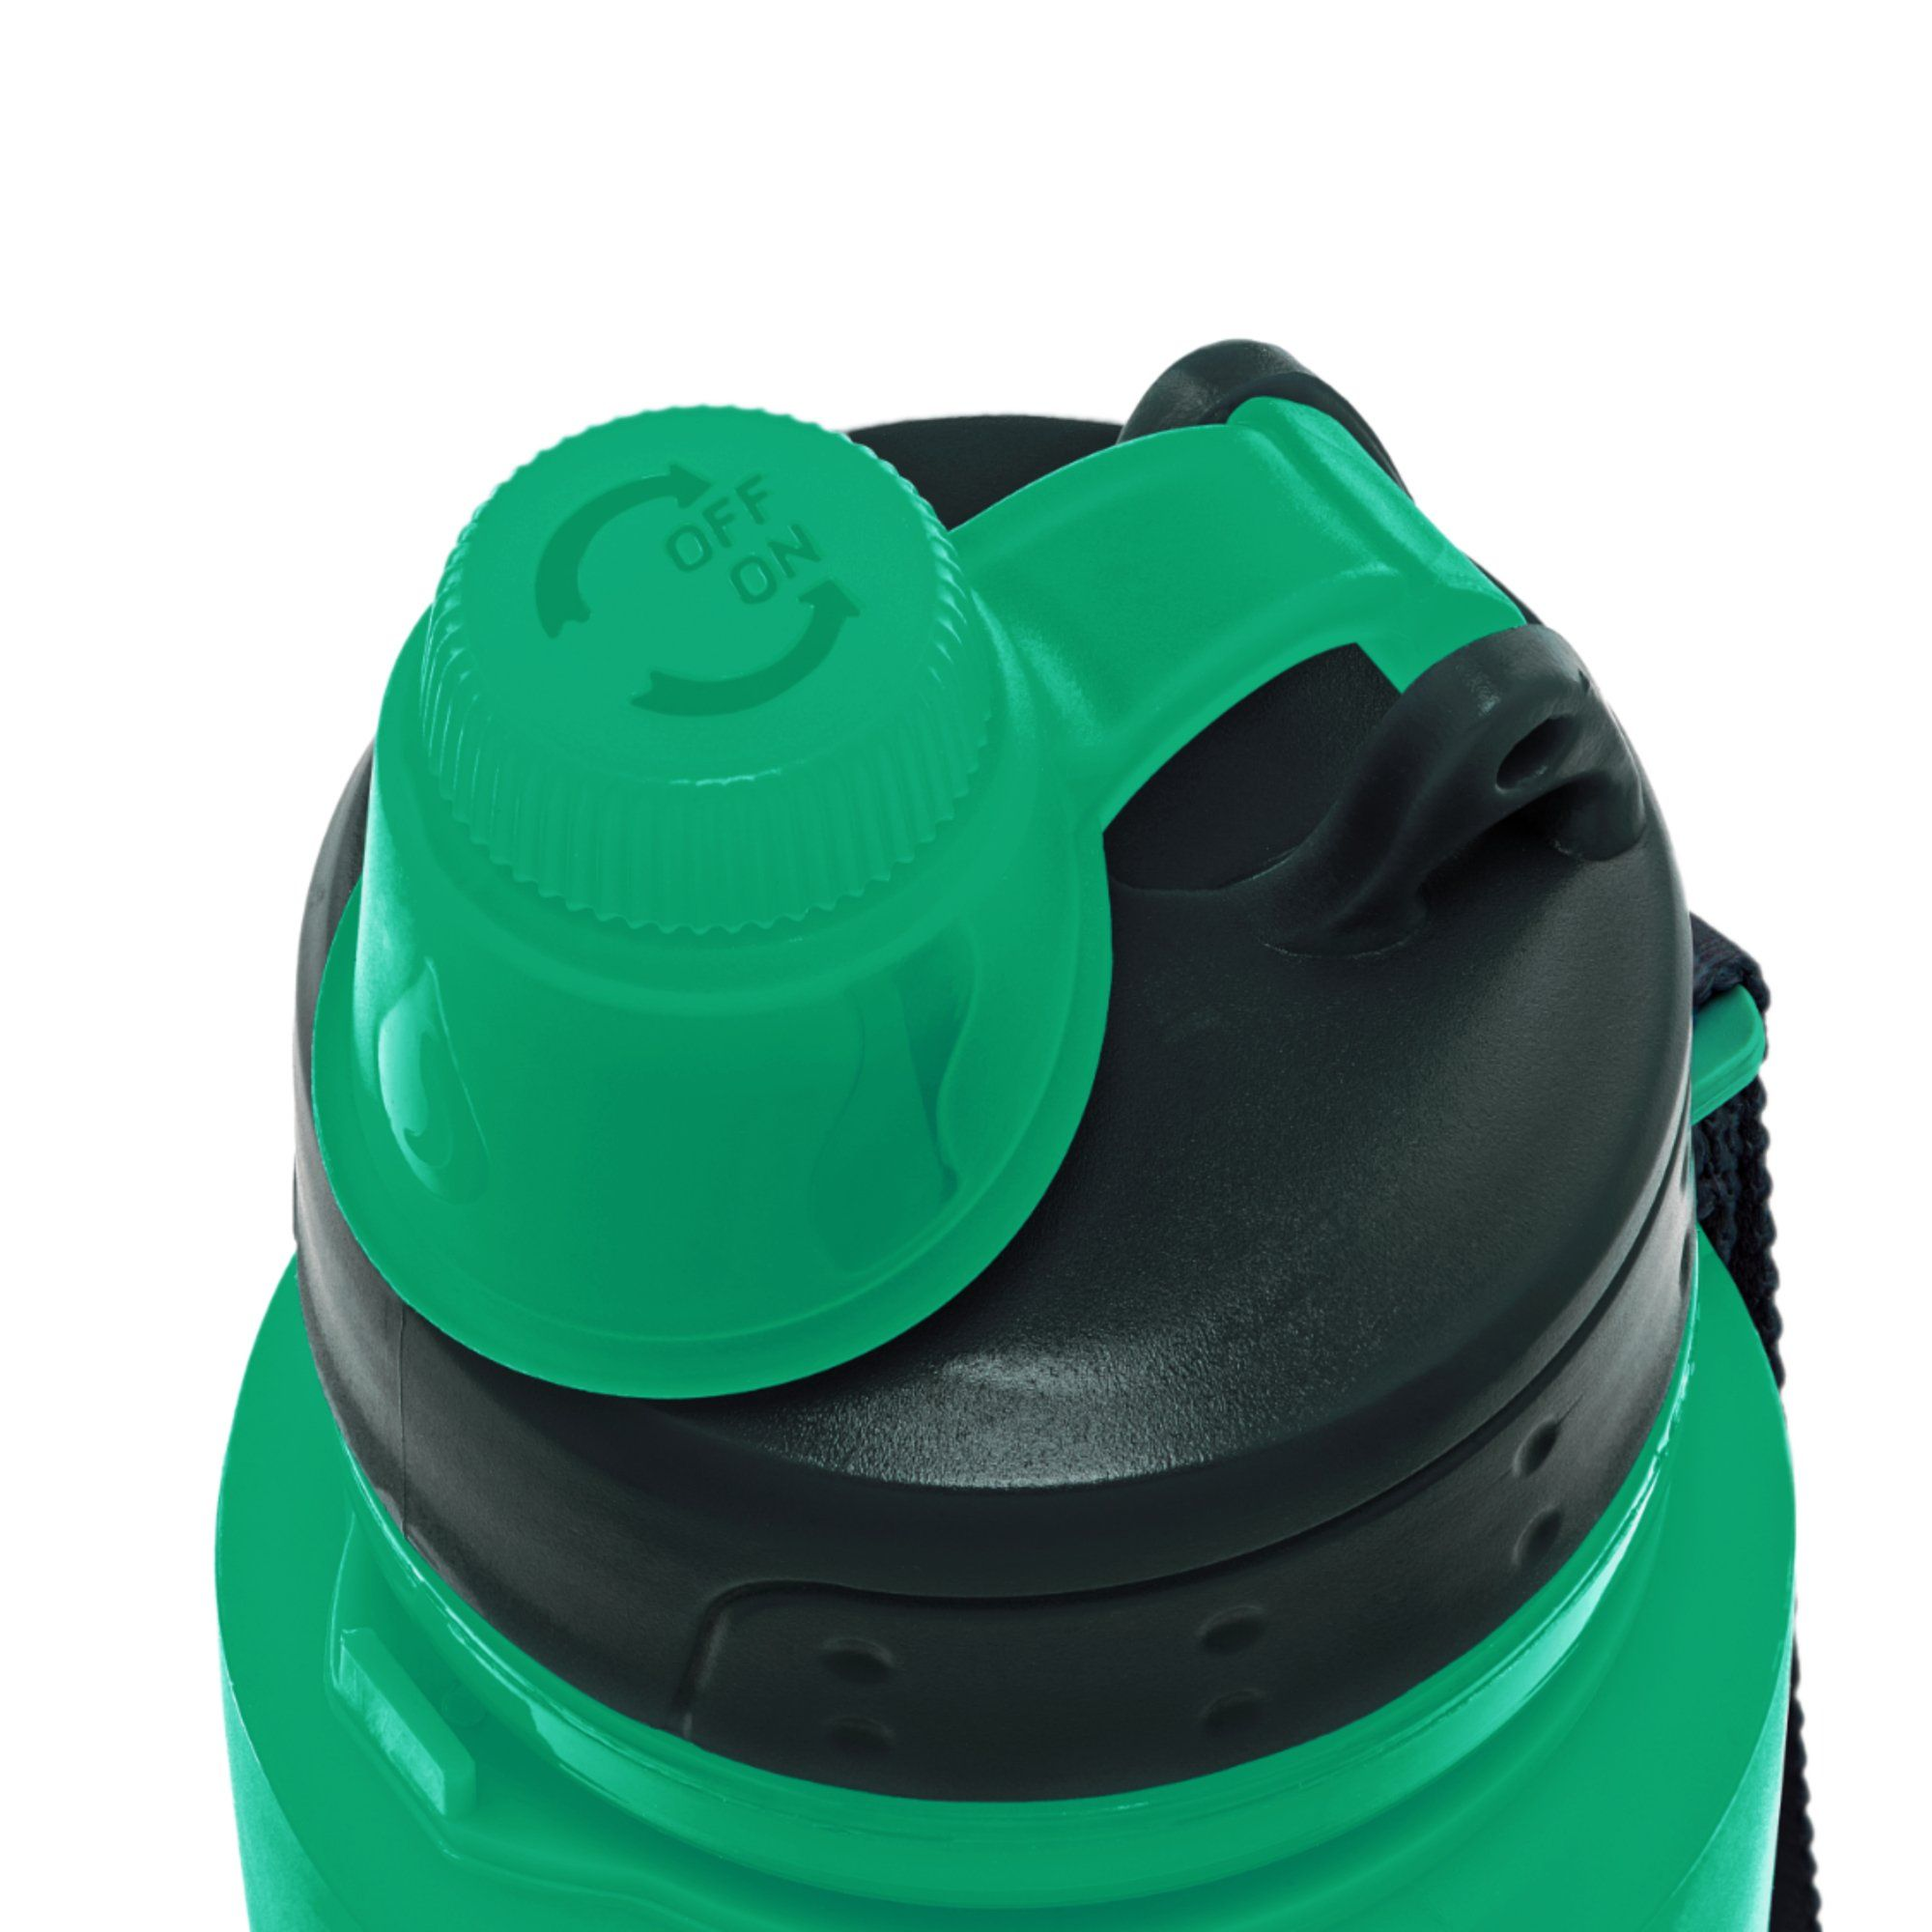 Nomader BPA Free Collapsible Sports Water Bottle Foldable